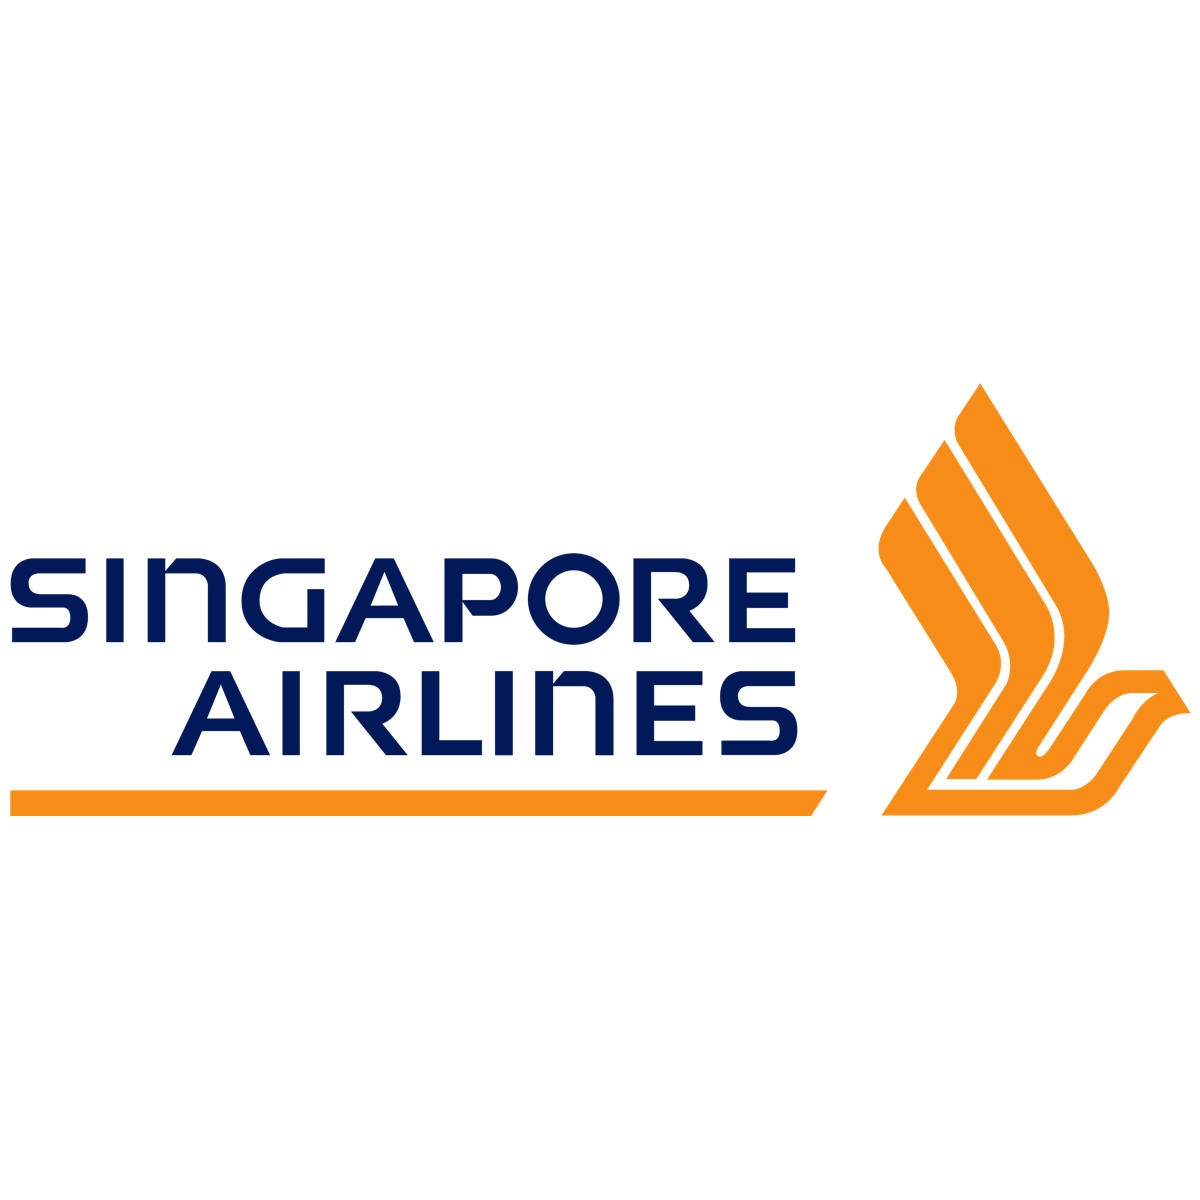 Singapore Airlines (SIA) - UOB Kay Hian 2018-05-18: 4QFY18 Earnings Trounce Estimates Core Net Profit Recovers From S$6m Loss In 4QFY17